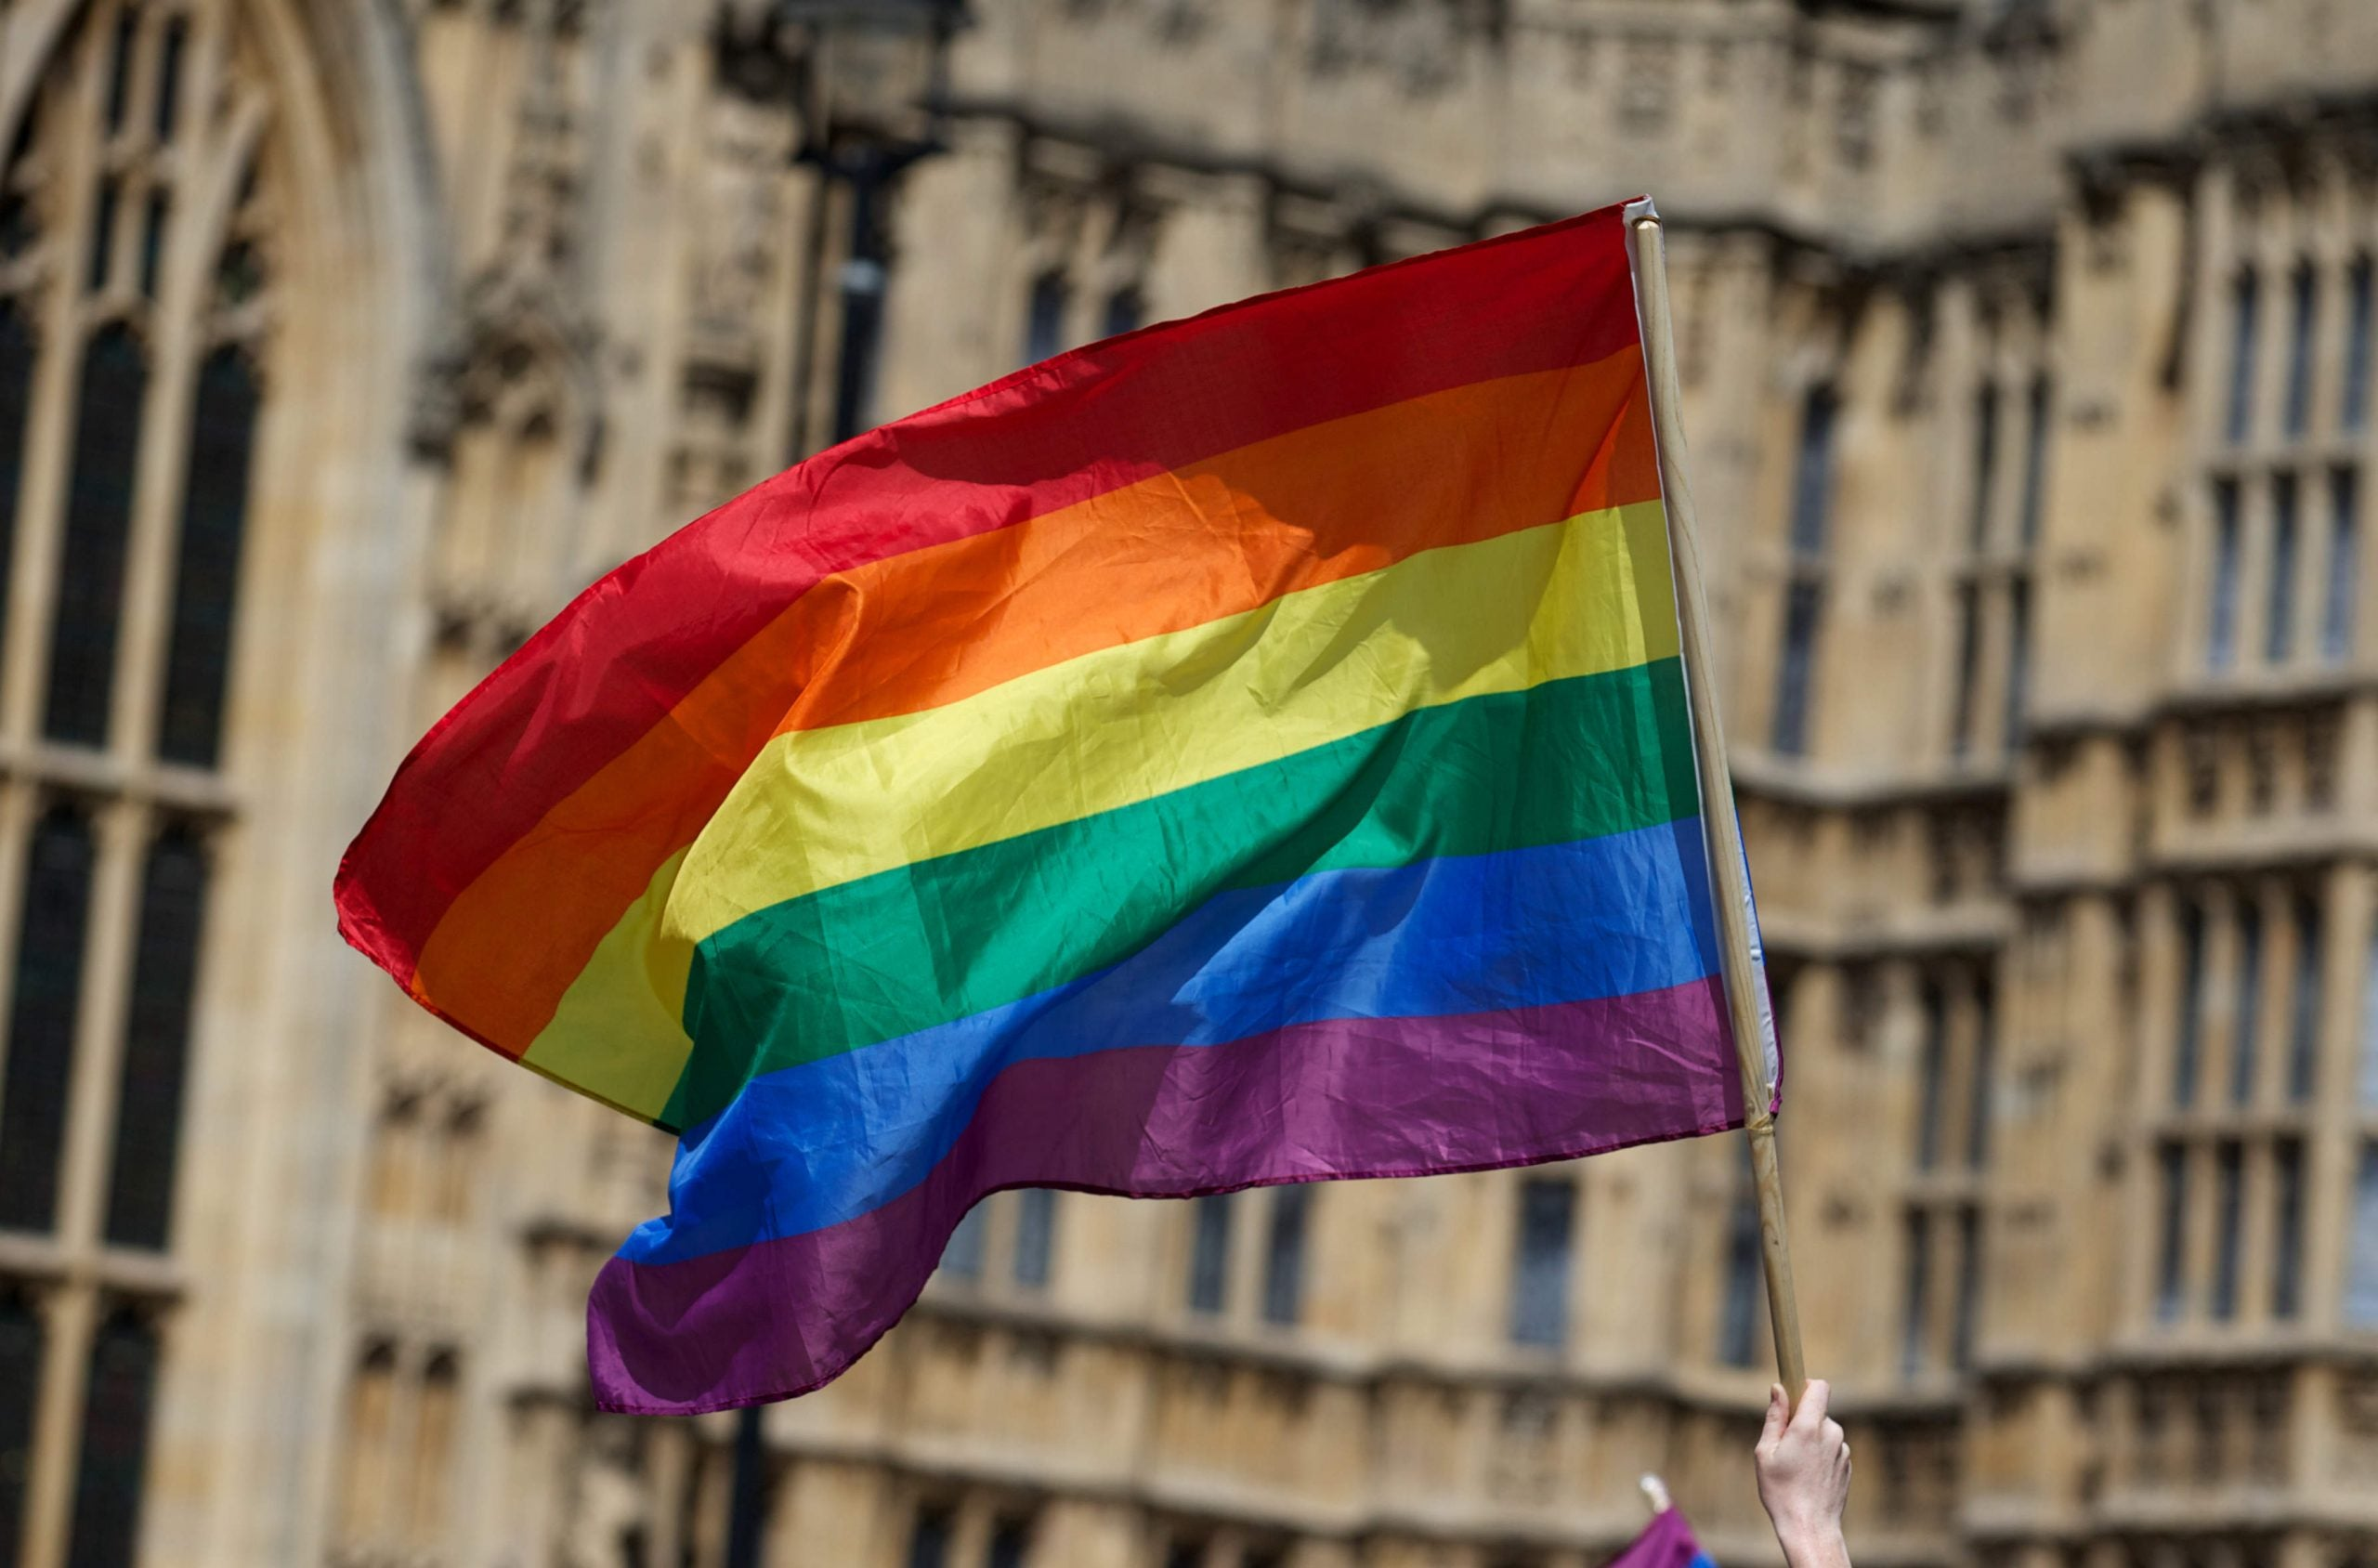 Language matters if you want LGBT politicians to succeed